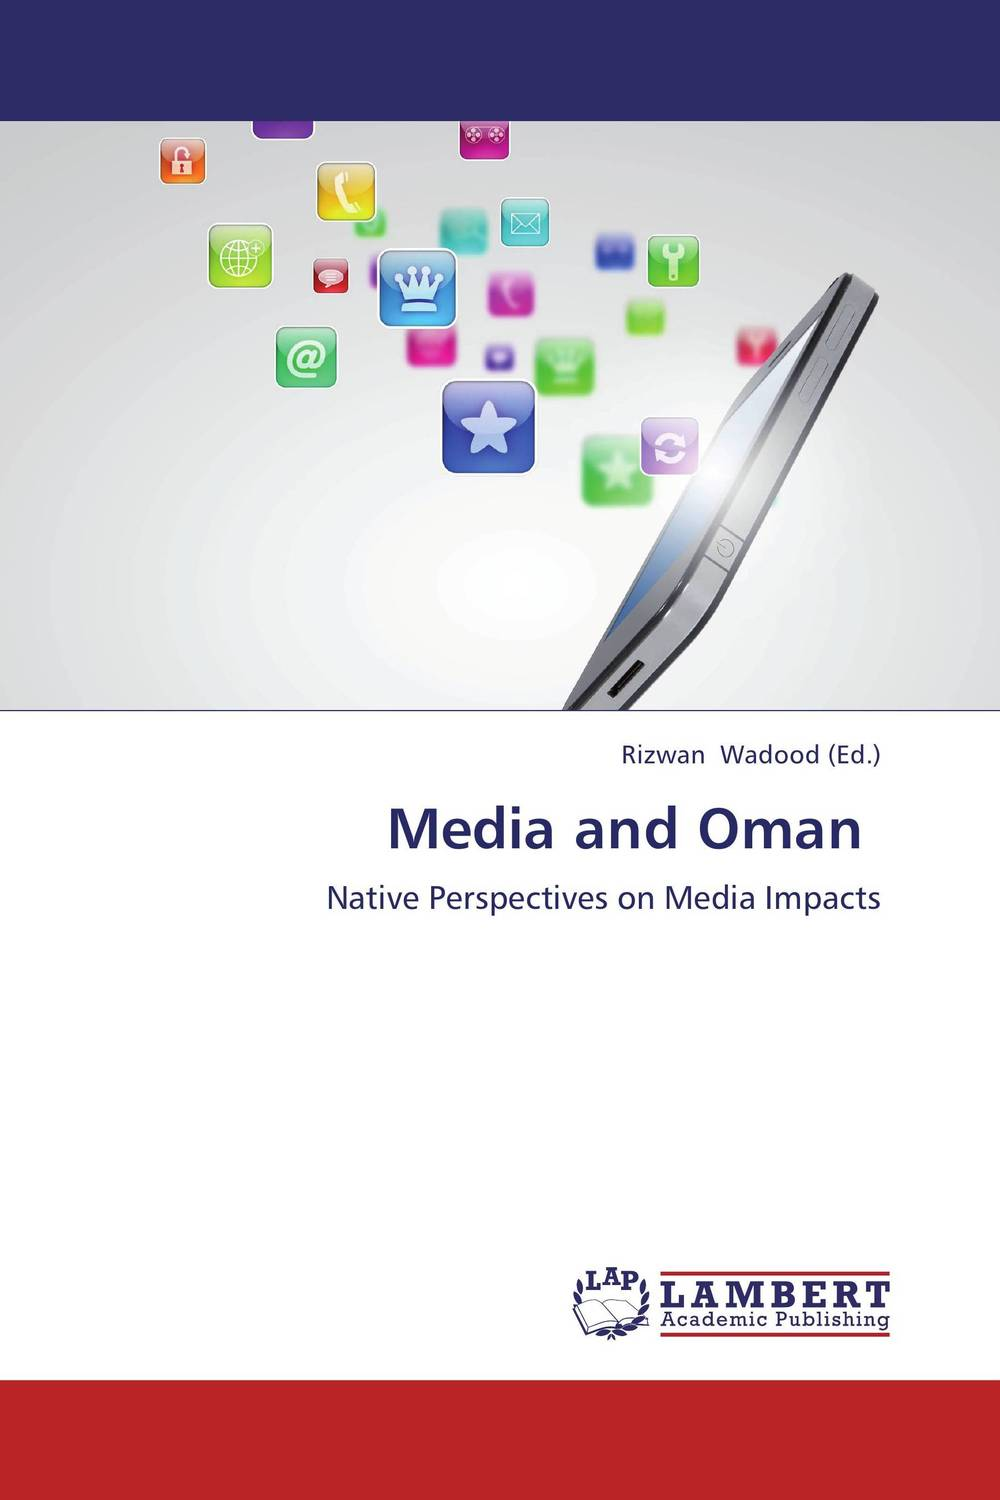 Media and Oman